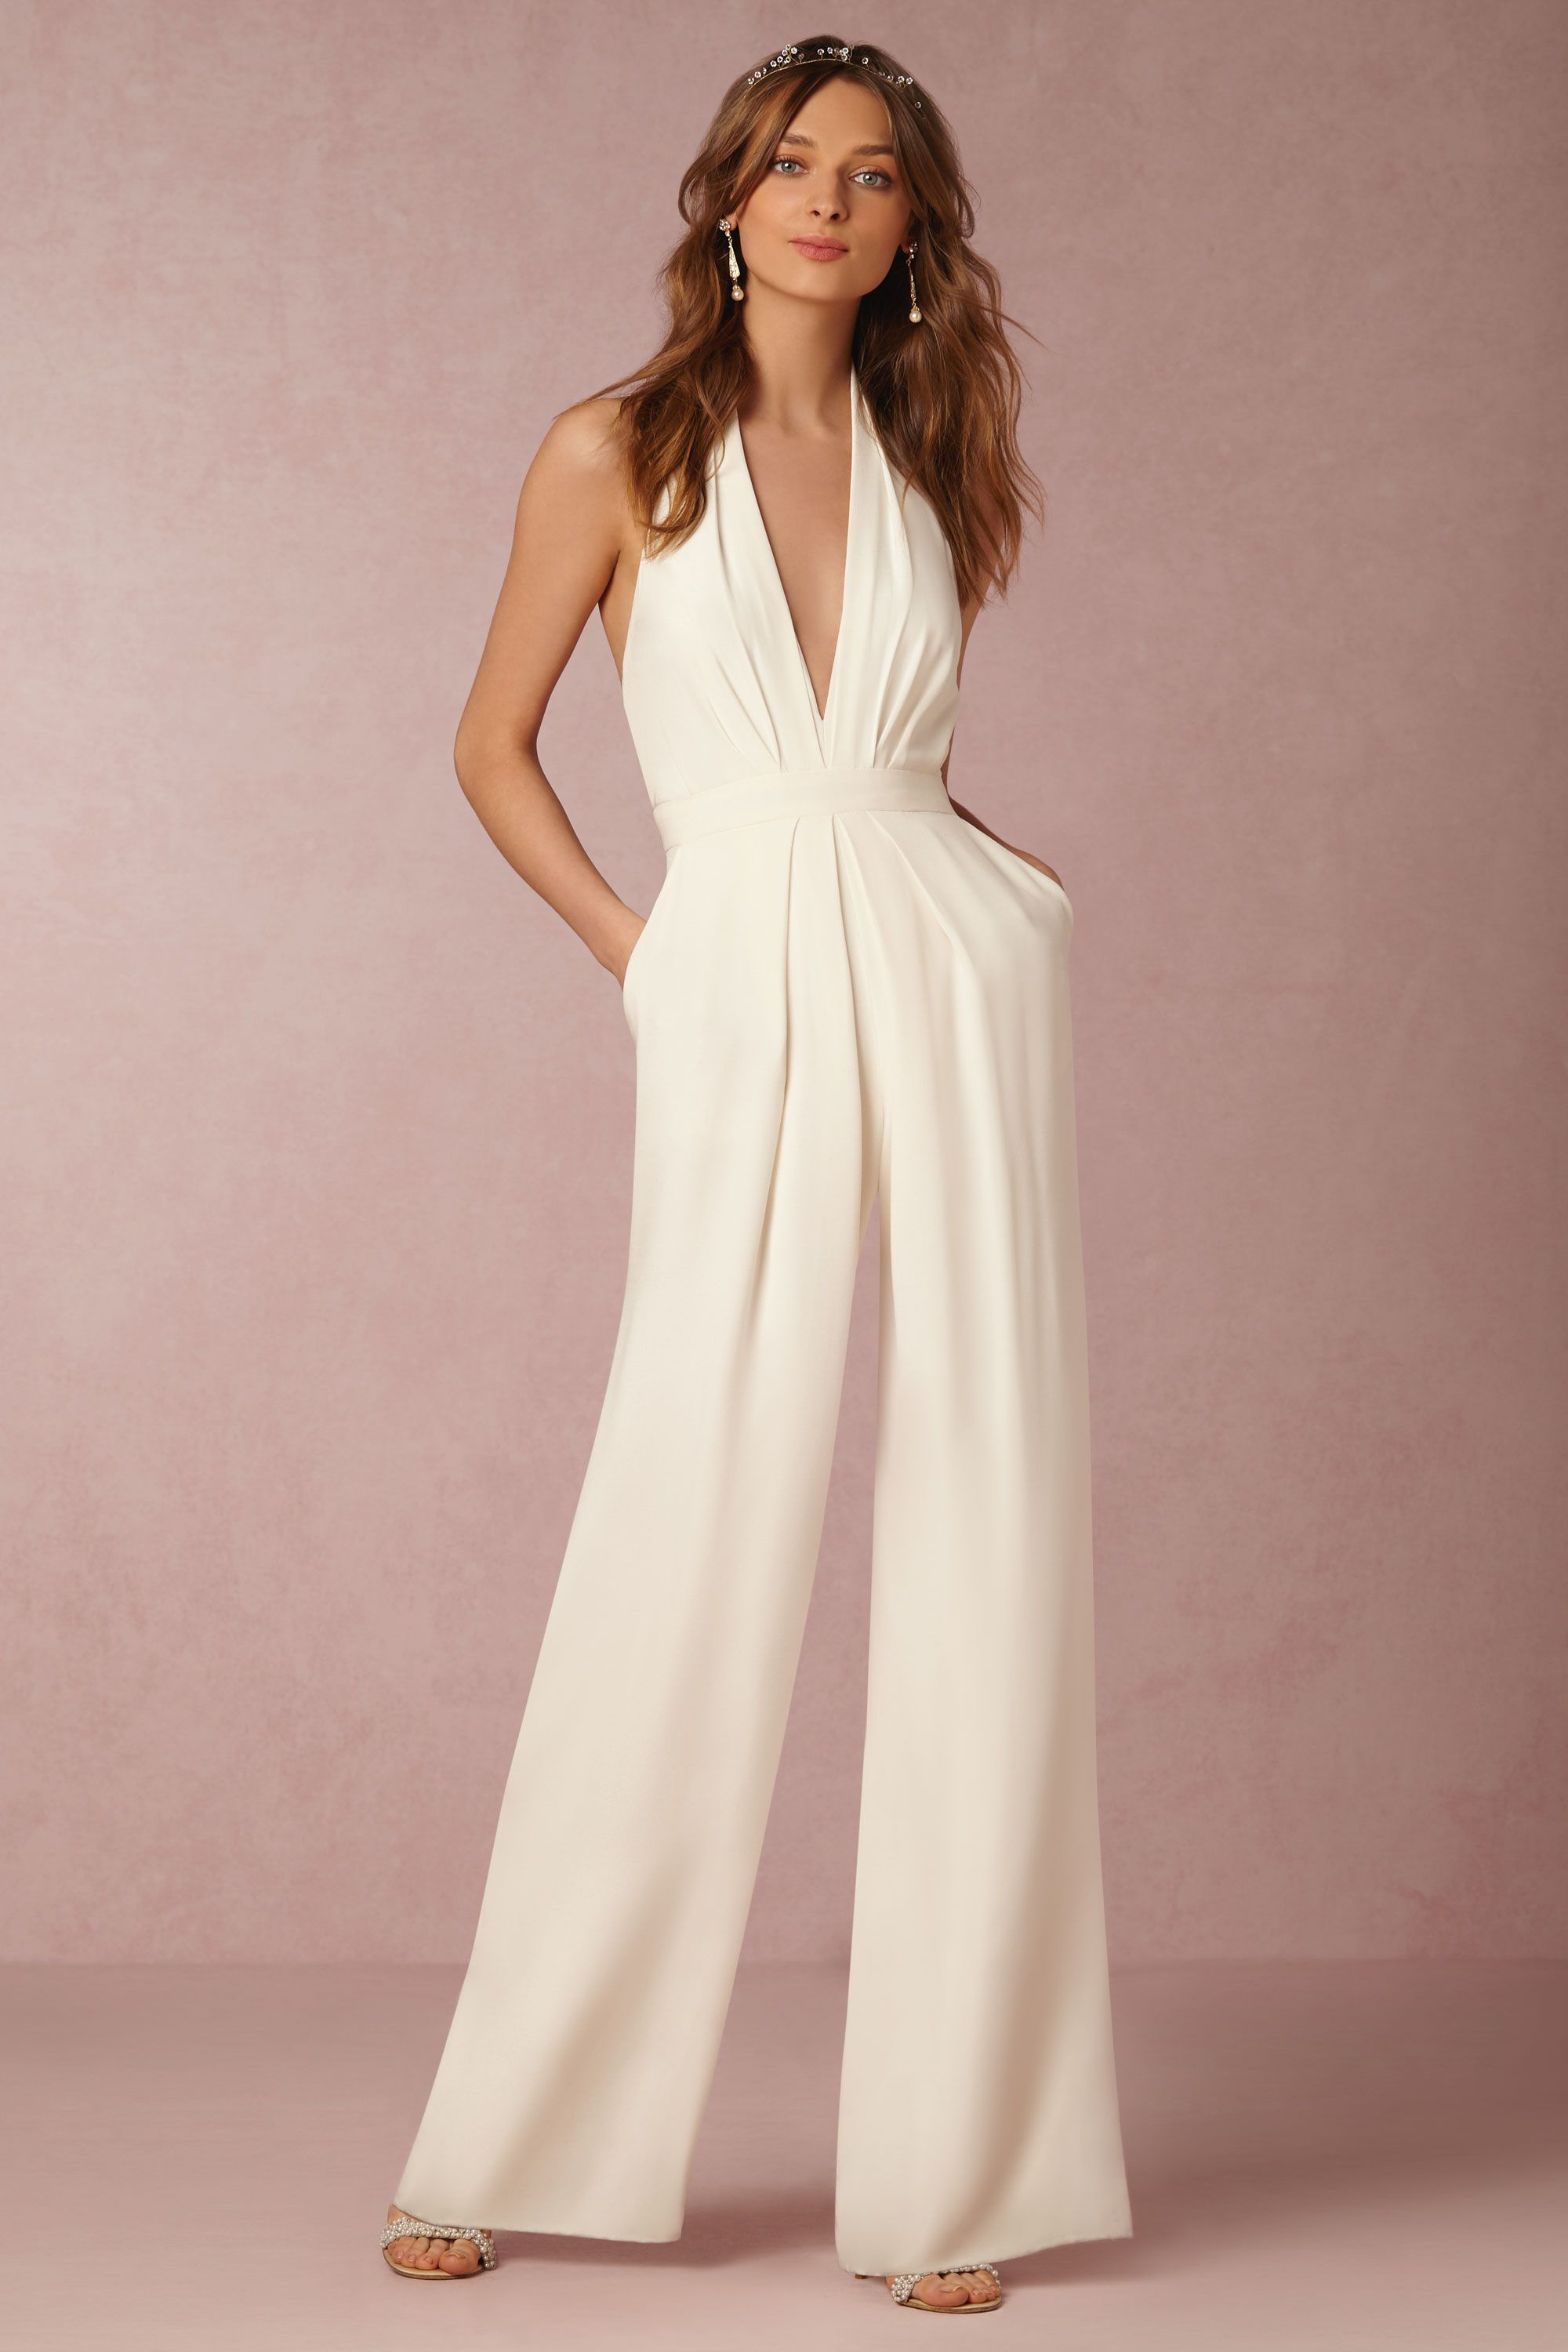 BHLDN Mara Jumpsuit in Dresses View All Dresses at BHLDN | Jumpsuits ...